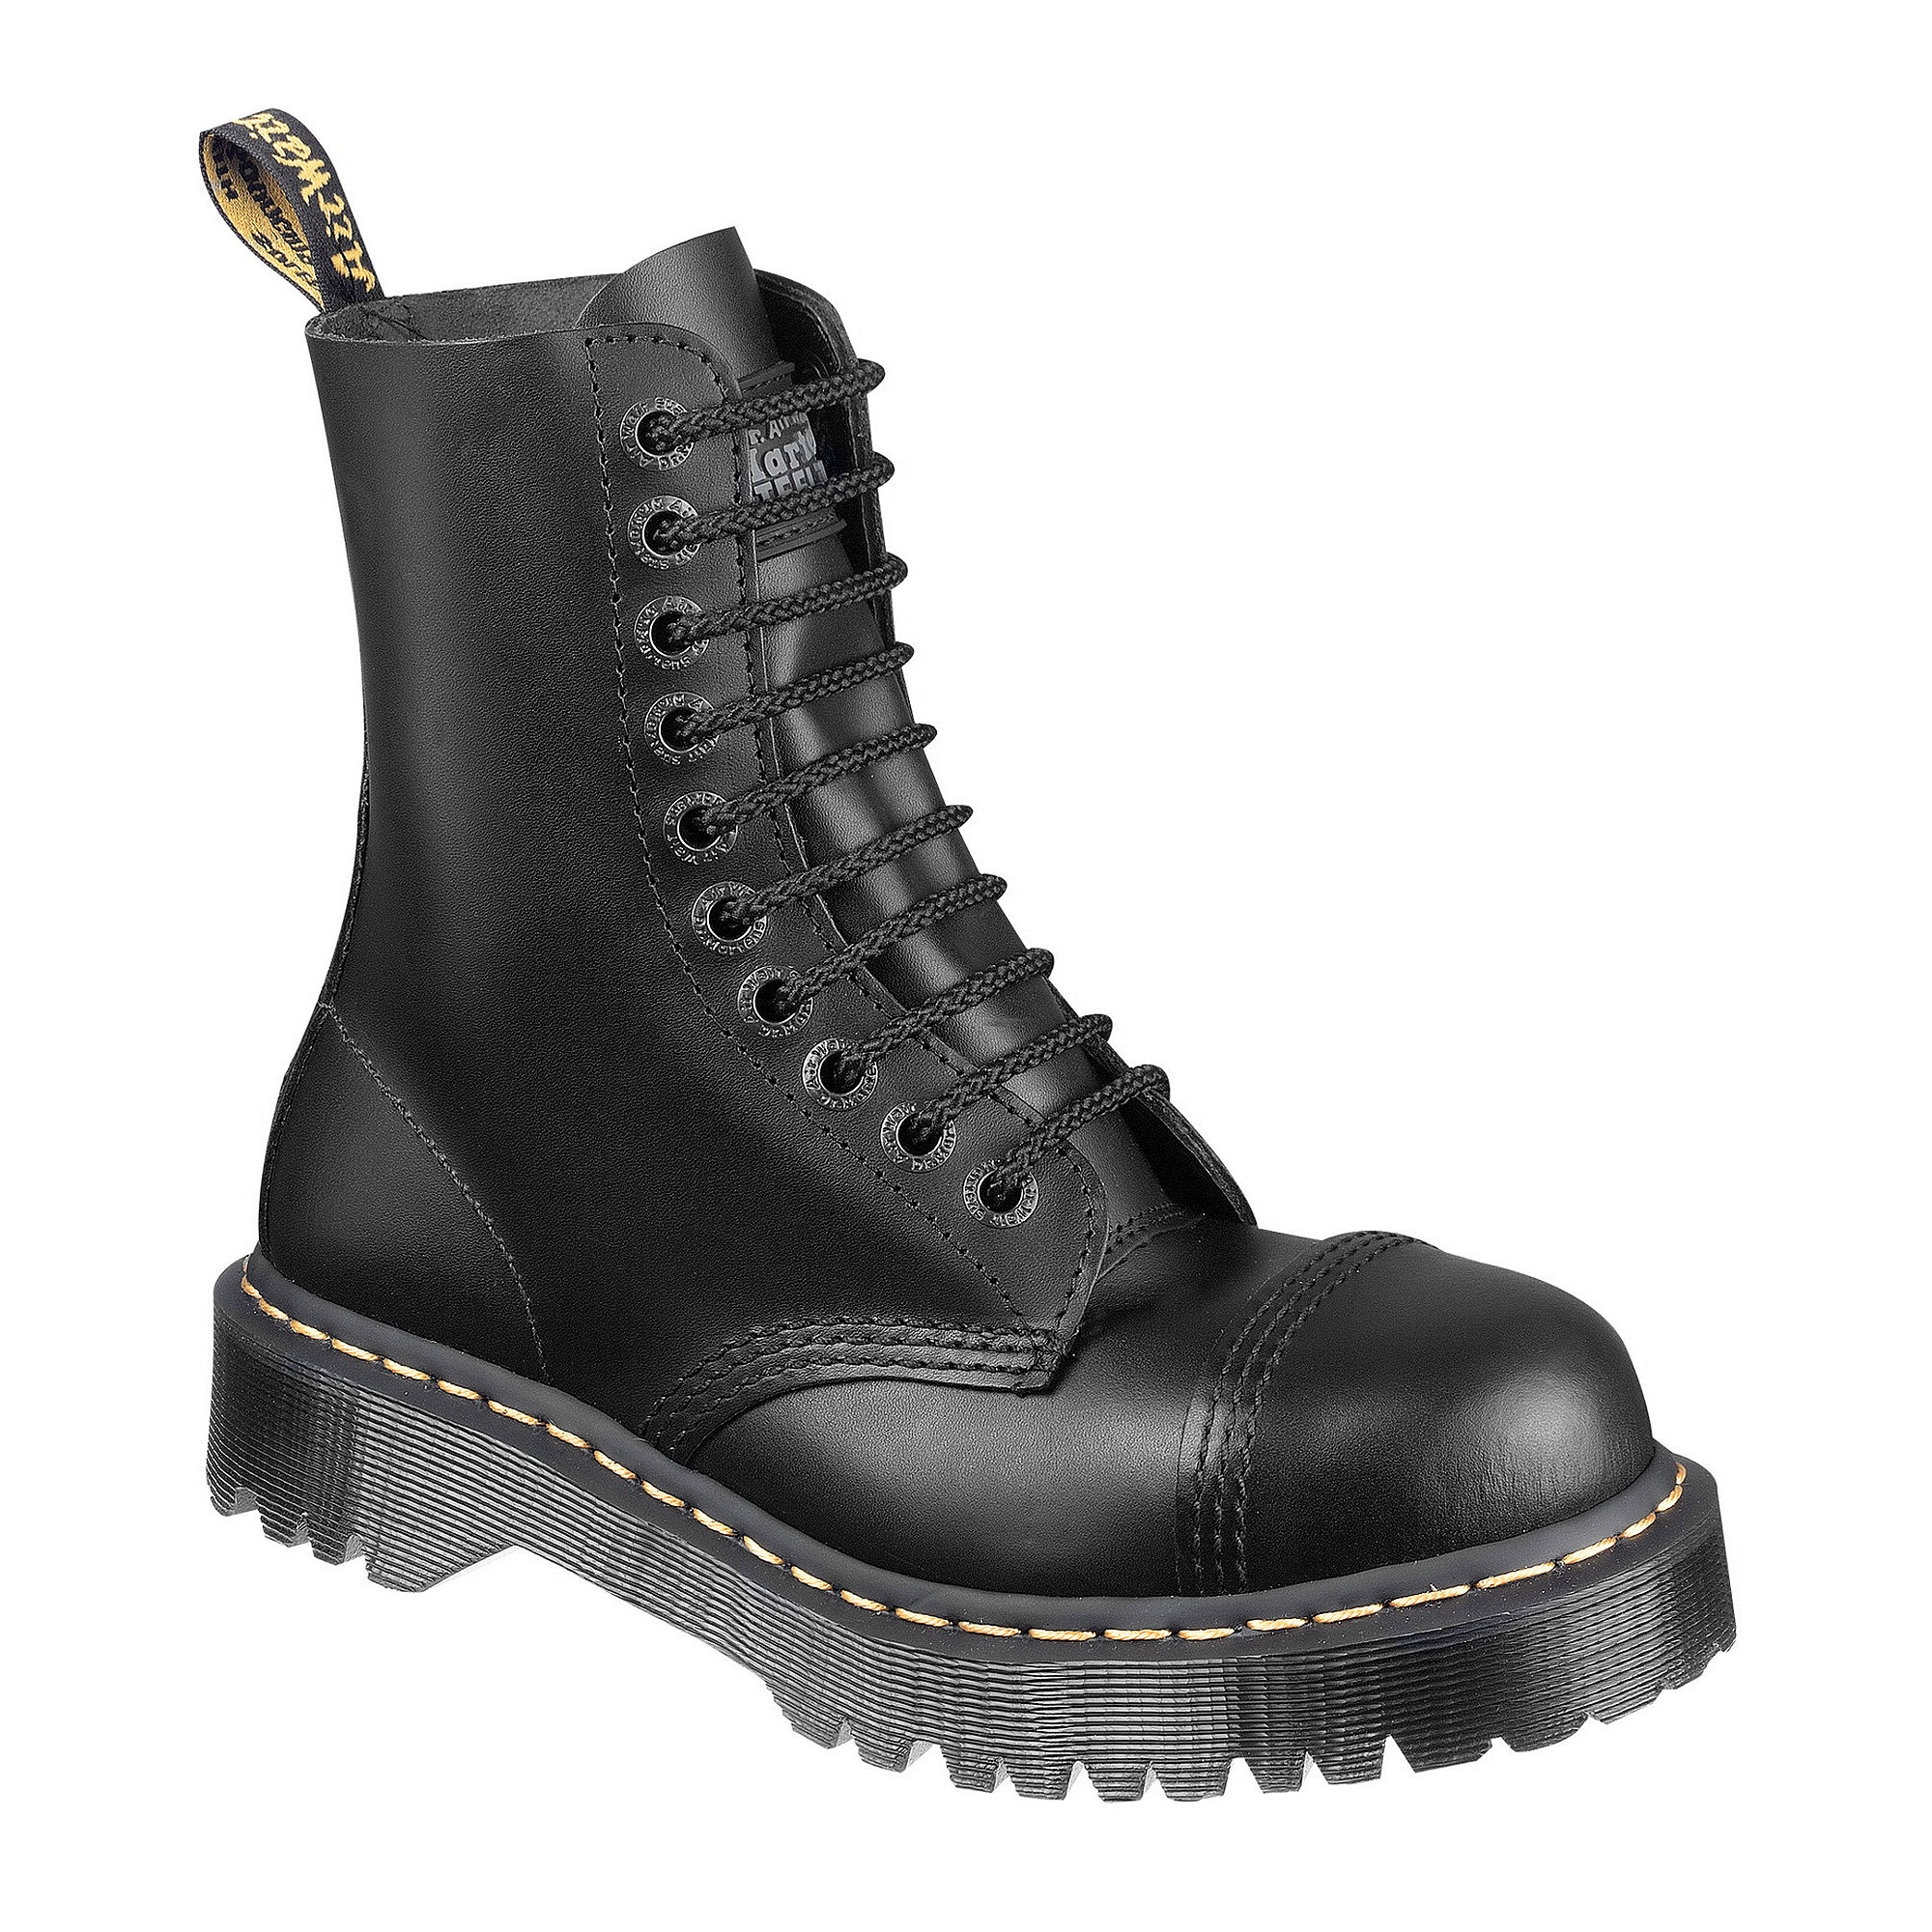 Dr Martens Shoes Uk Price